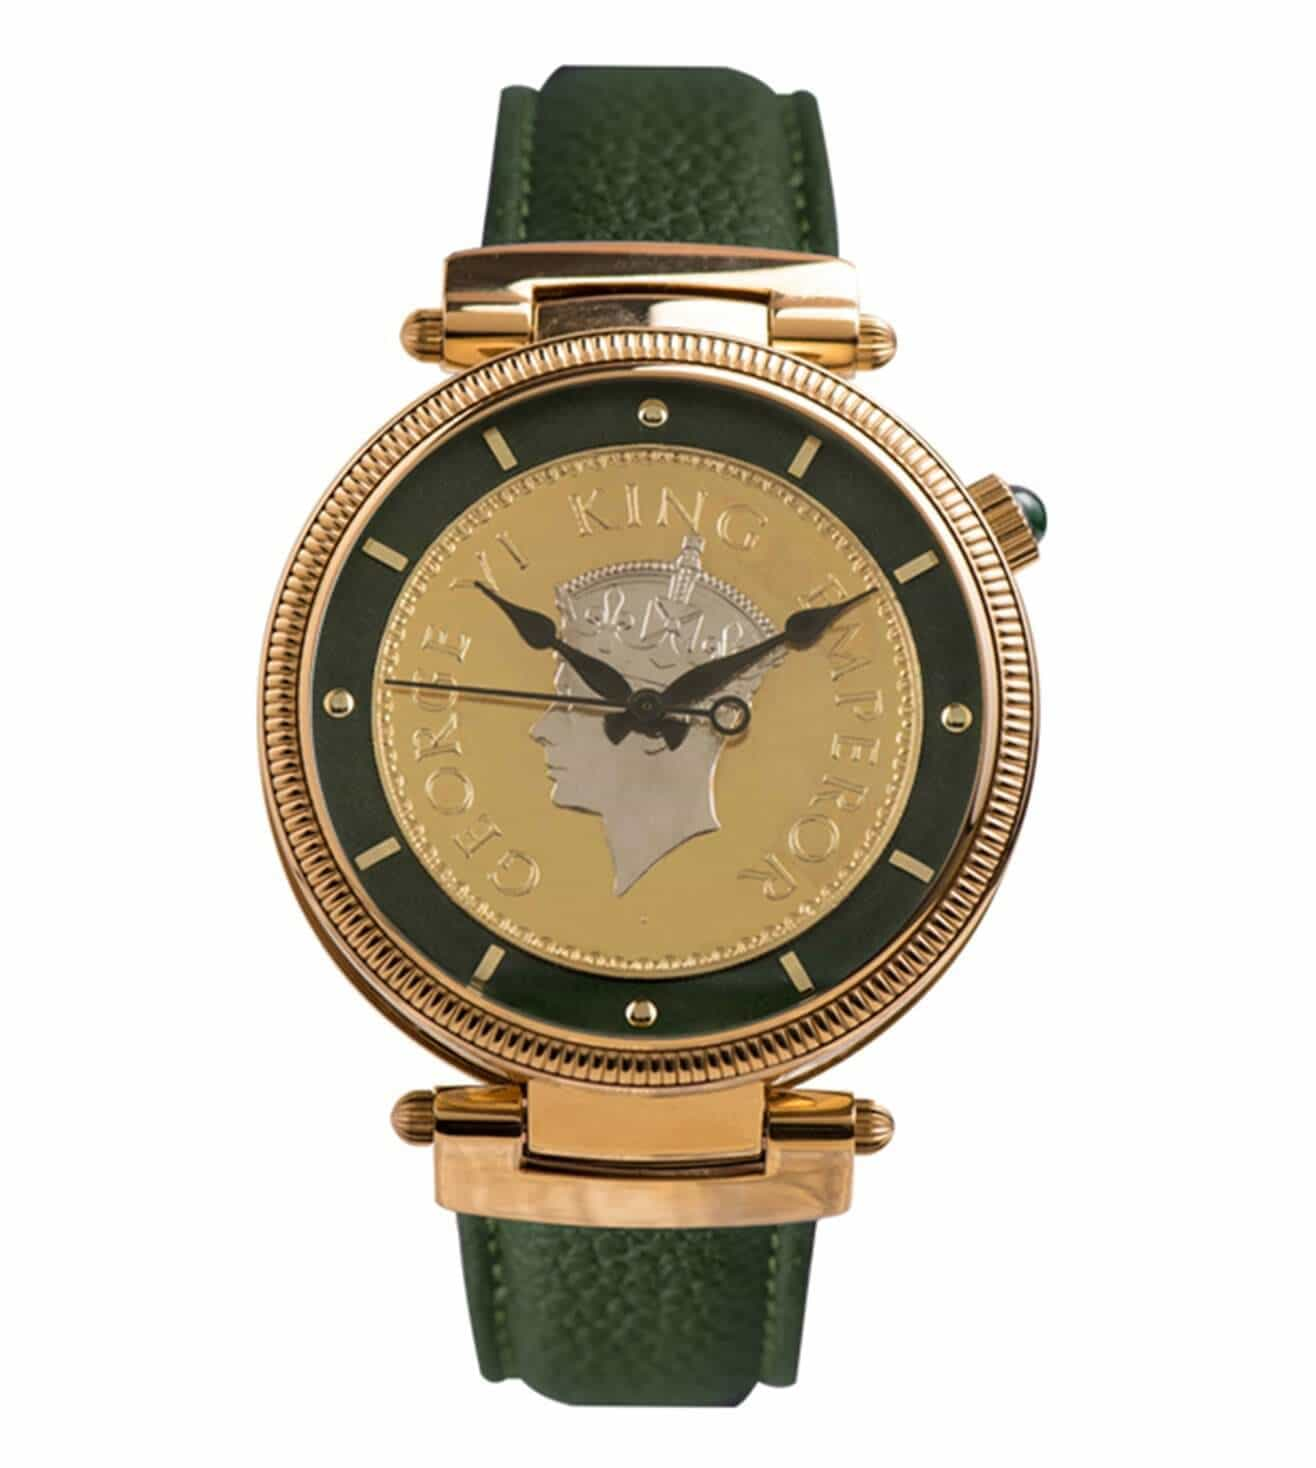 top indian watch brands jaipur watch company -model IAGN01 Imperial II